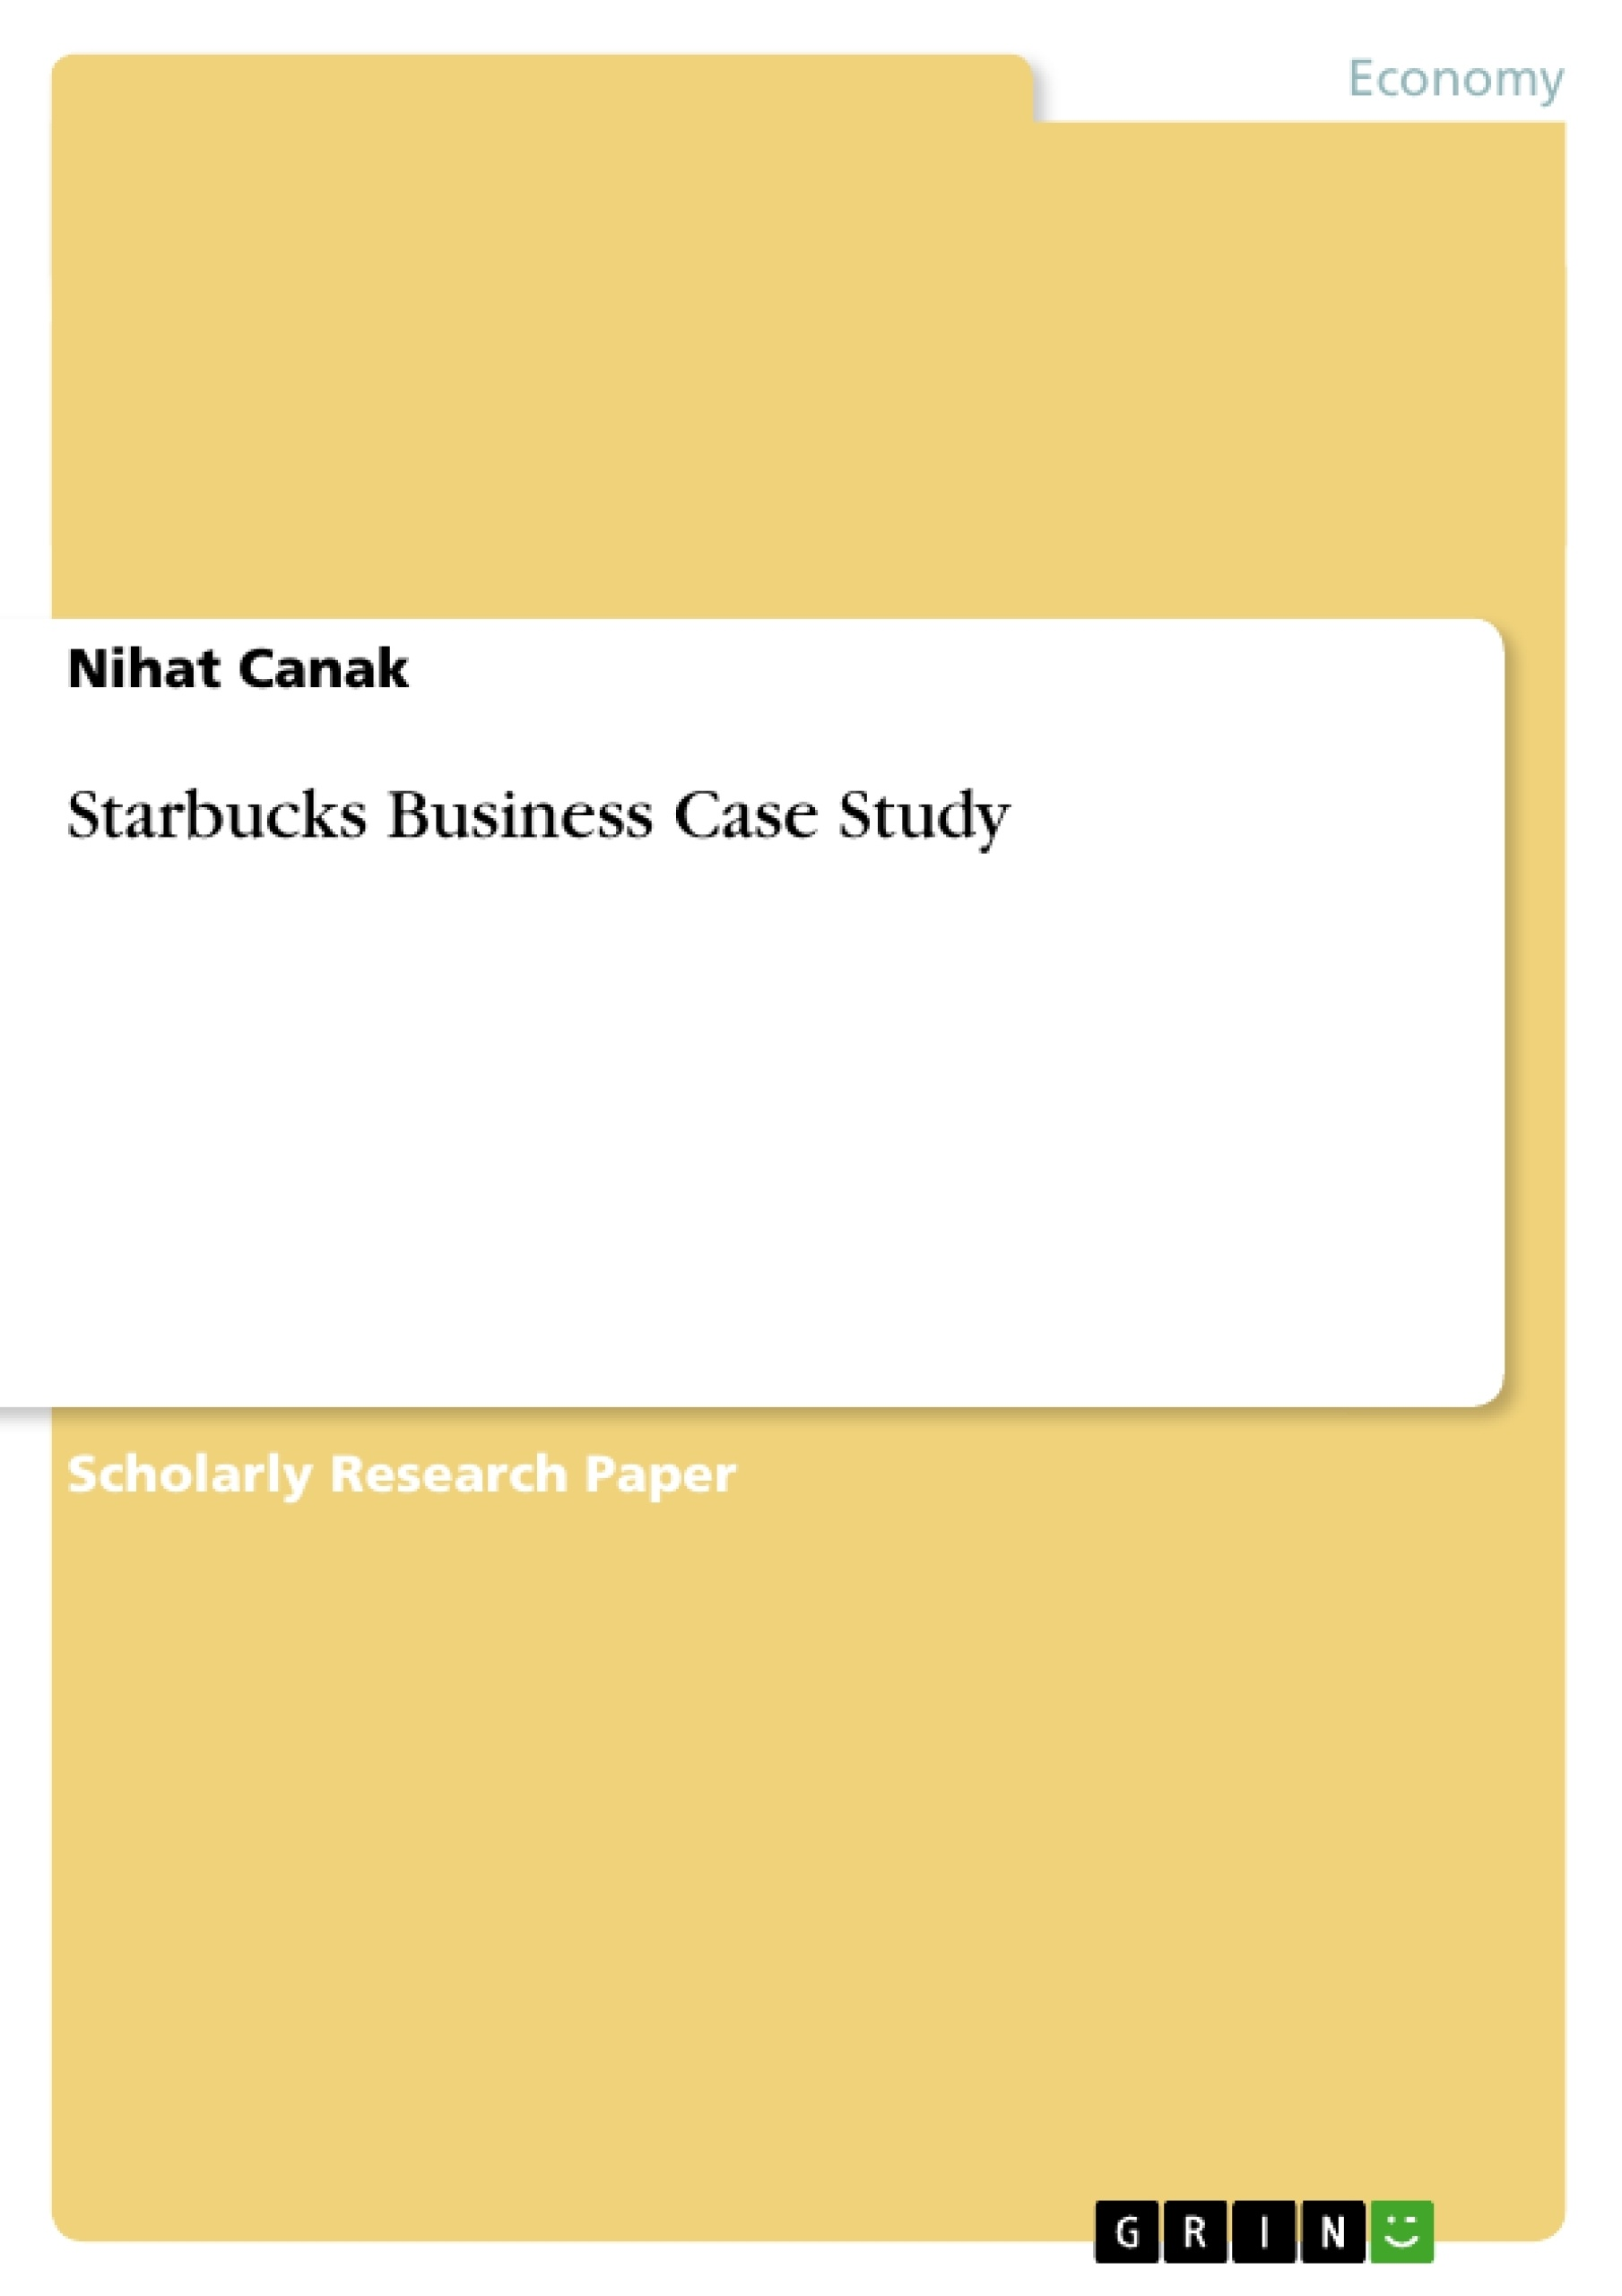 starbucks business case study publish your master s thesis  starbucks business case study publish your master s thesis bachelor s thesis essay or term paper